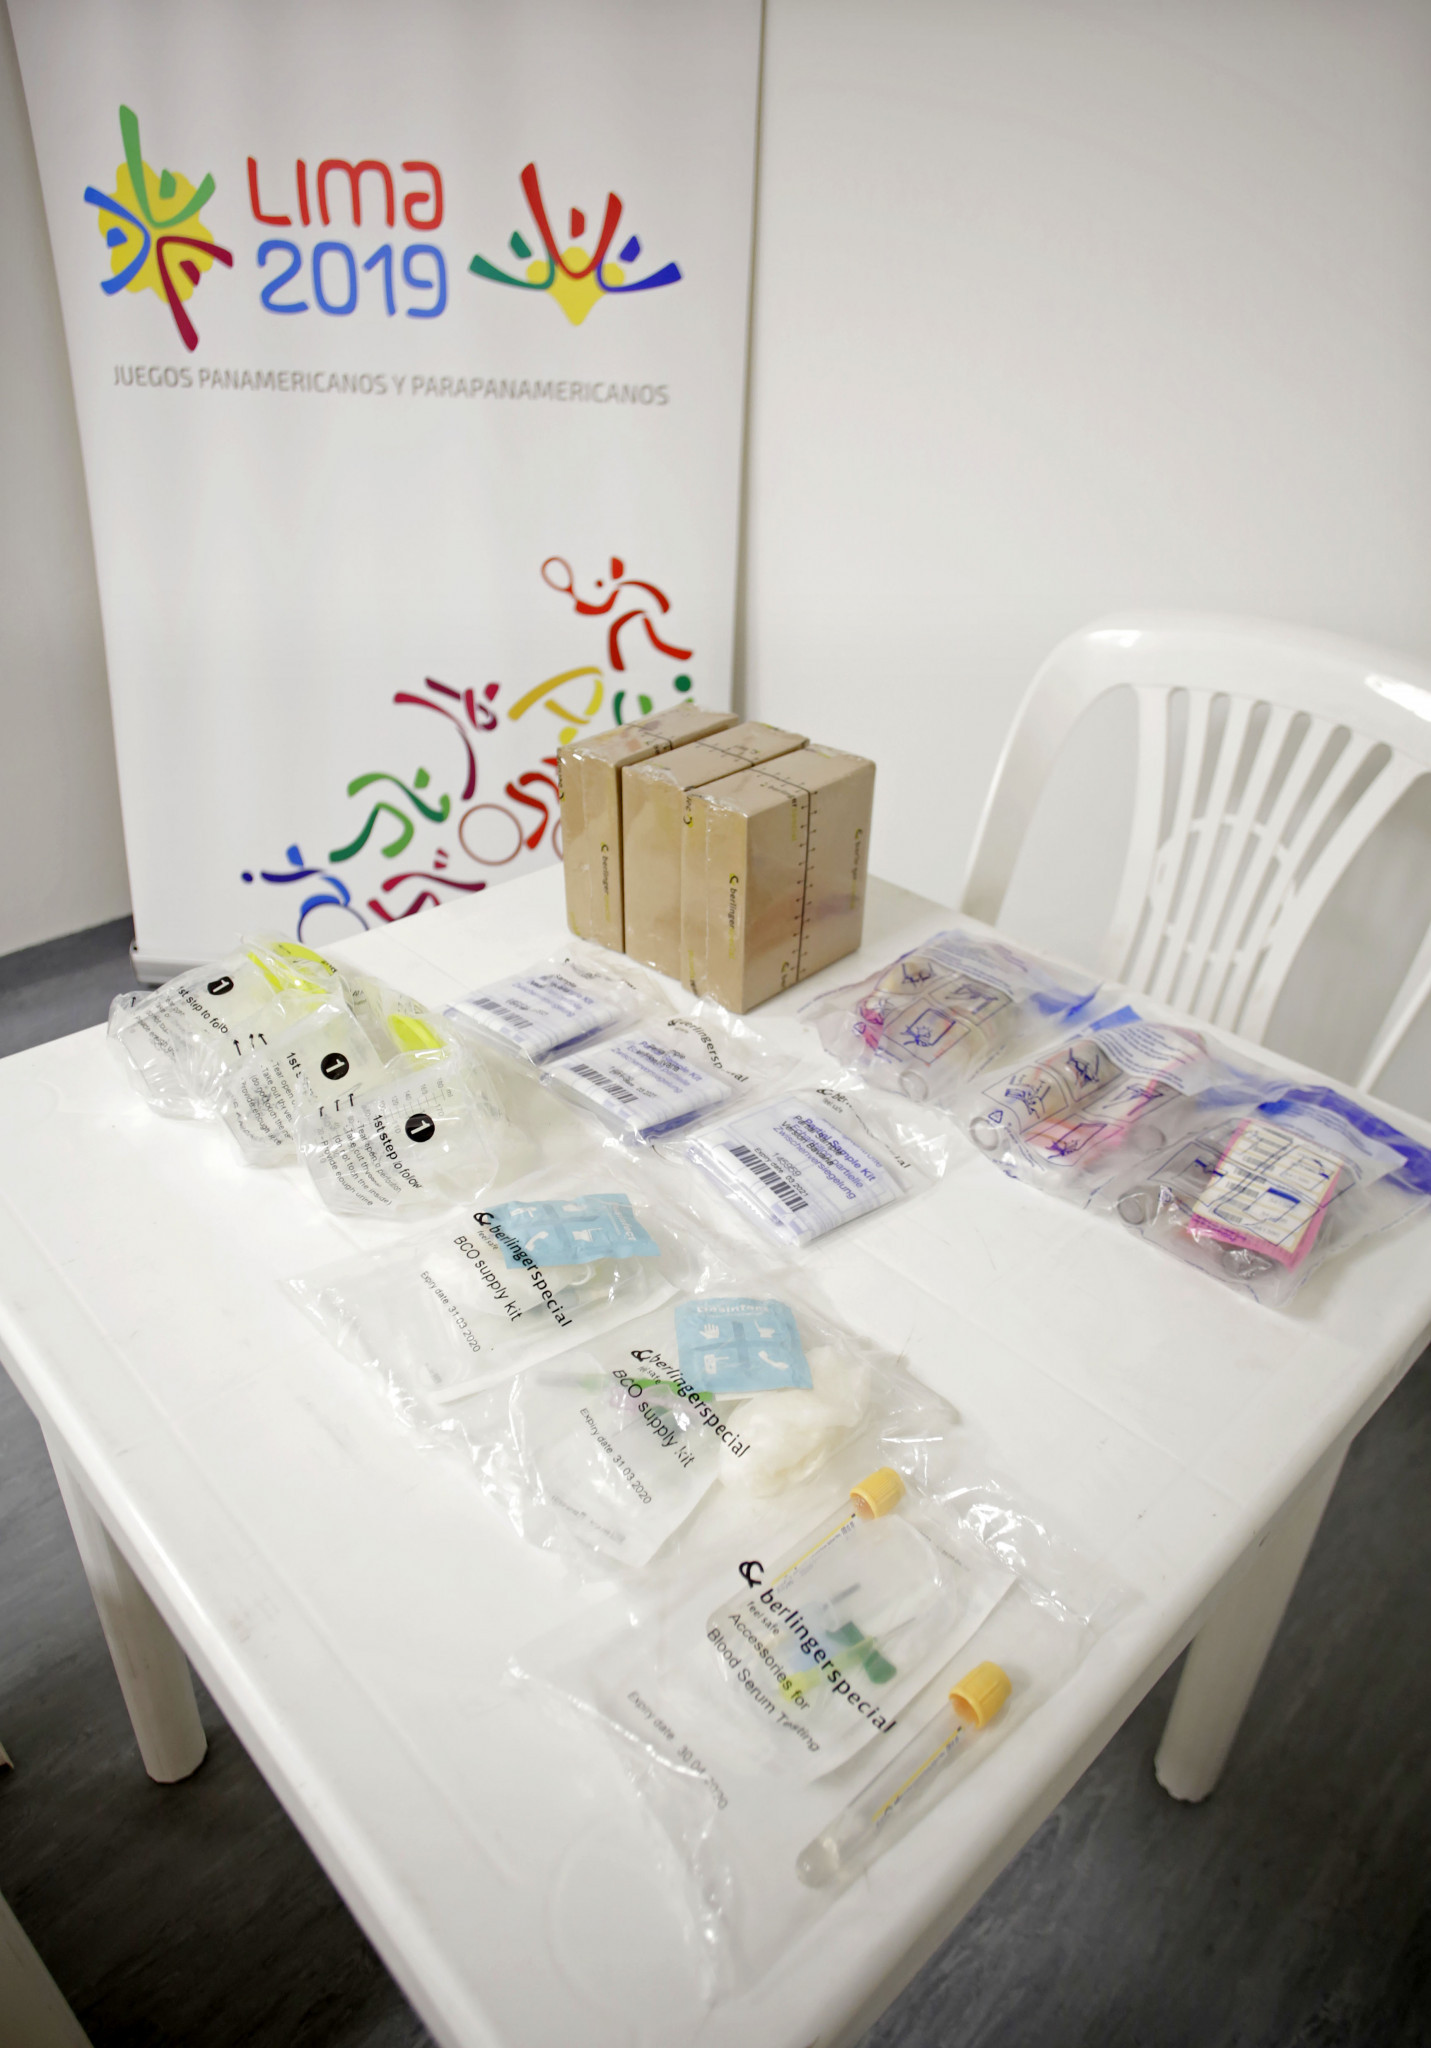 Lima 2019 organisers have revealed there will be a total of 32 doping control stations collecting samples during this year's Pan American and Parapan Games ©Lima 2019